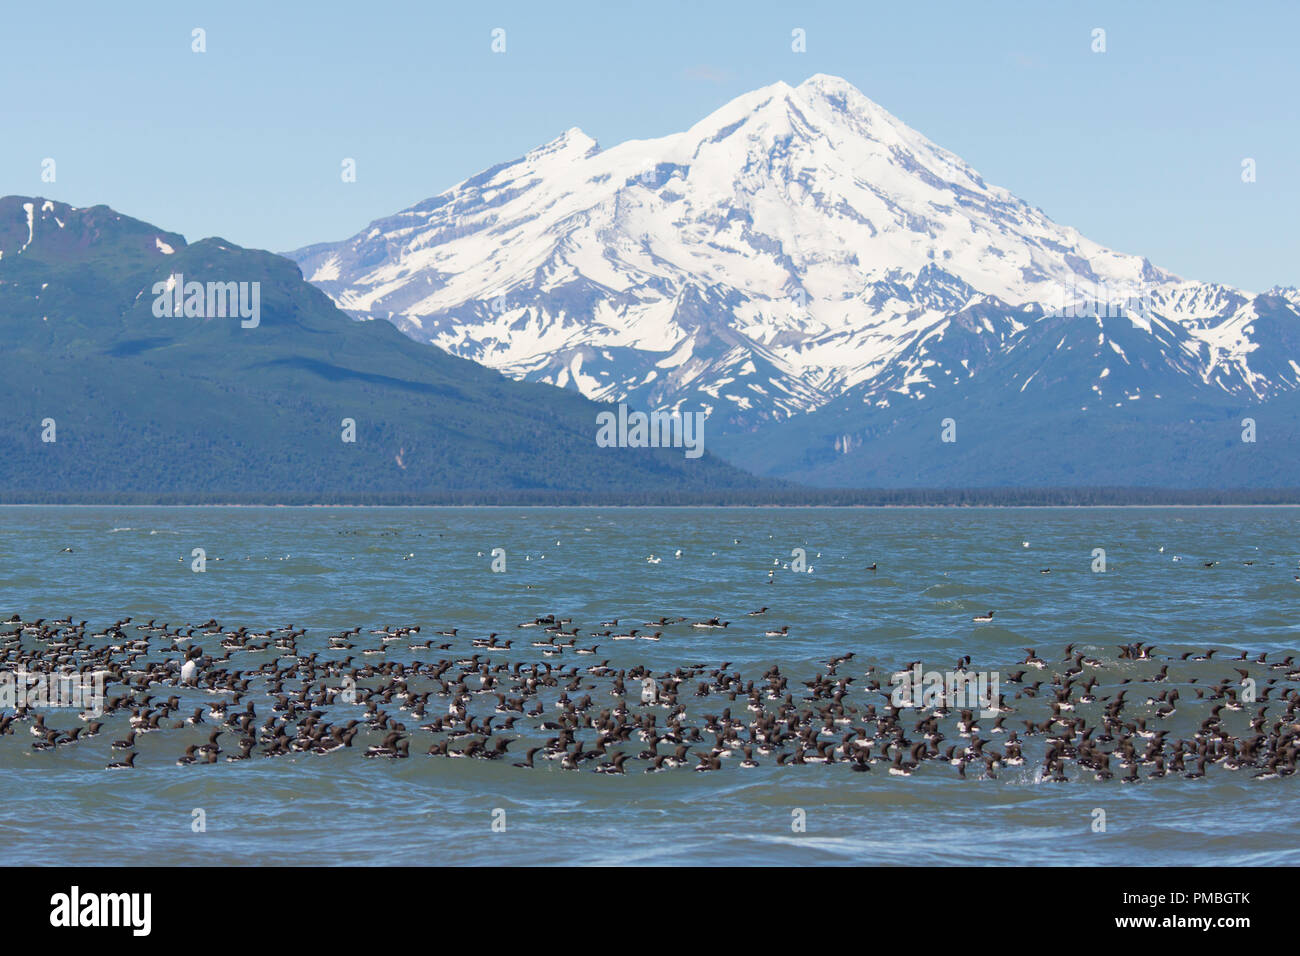 Raft of Common  Murres with Mt Redoubt volcano,  Lake Clark National Park, Alaska. - Stock Image